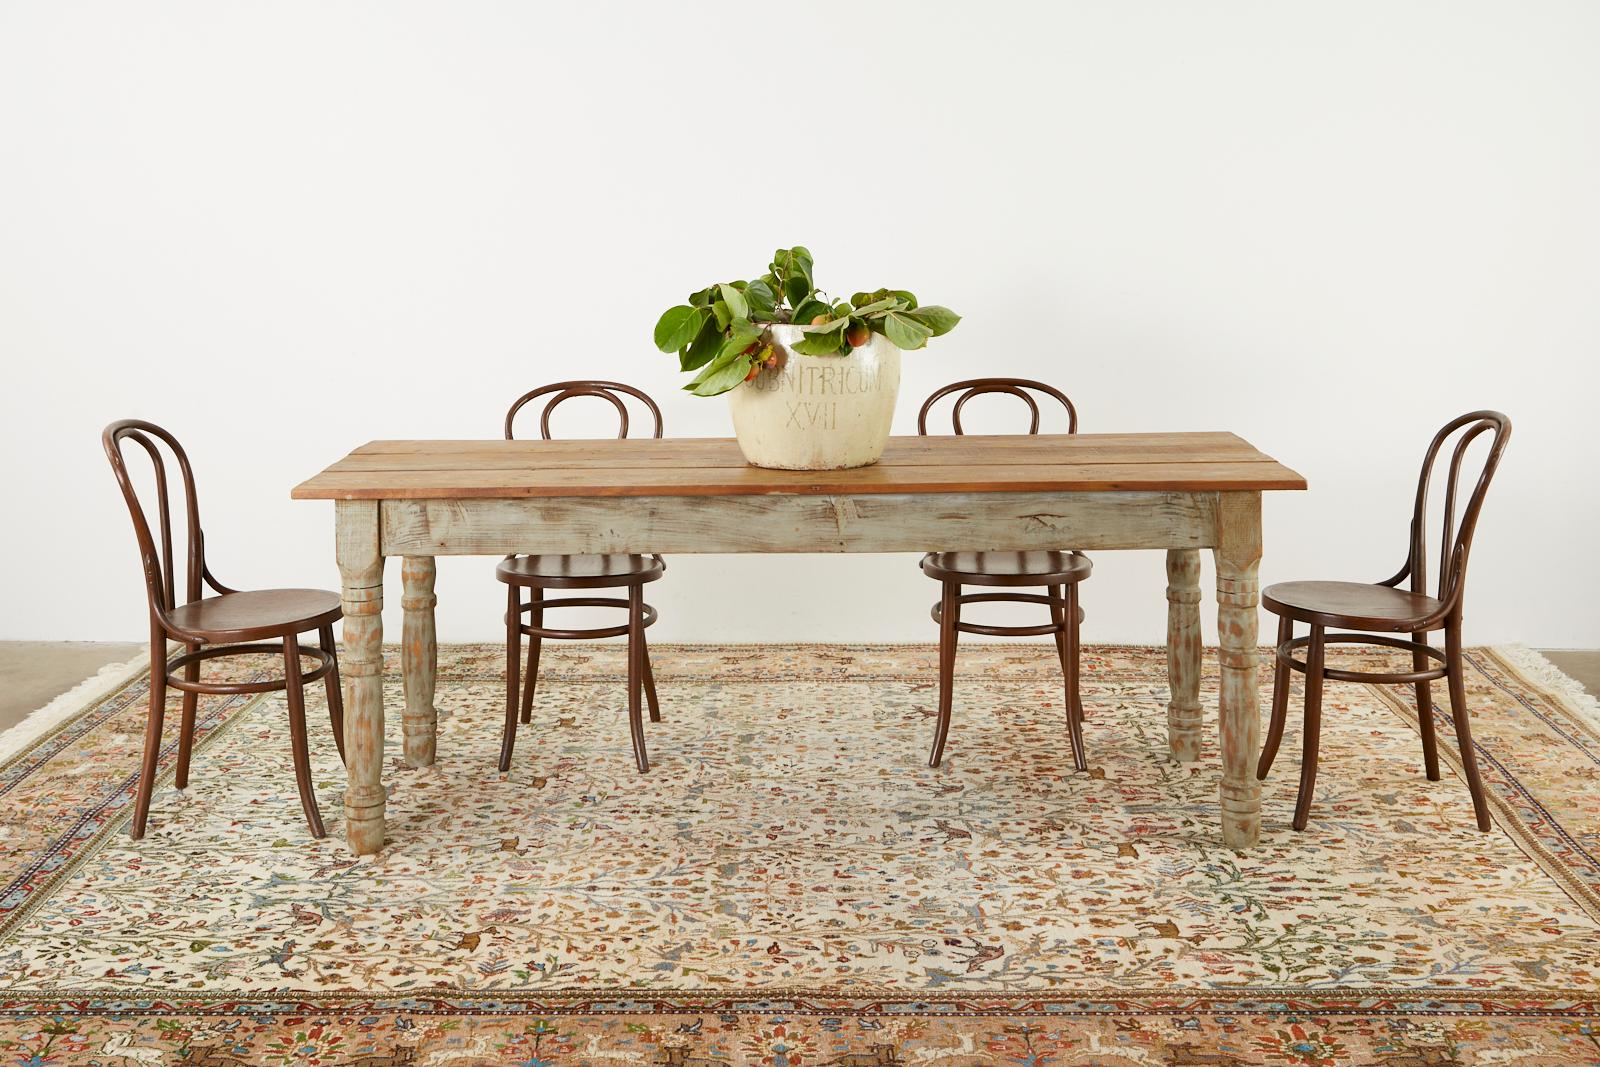 American Country Painted Pine Farmhouse Dining Table For Sale At 1stdibs